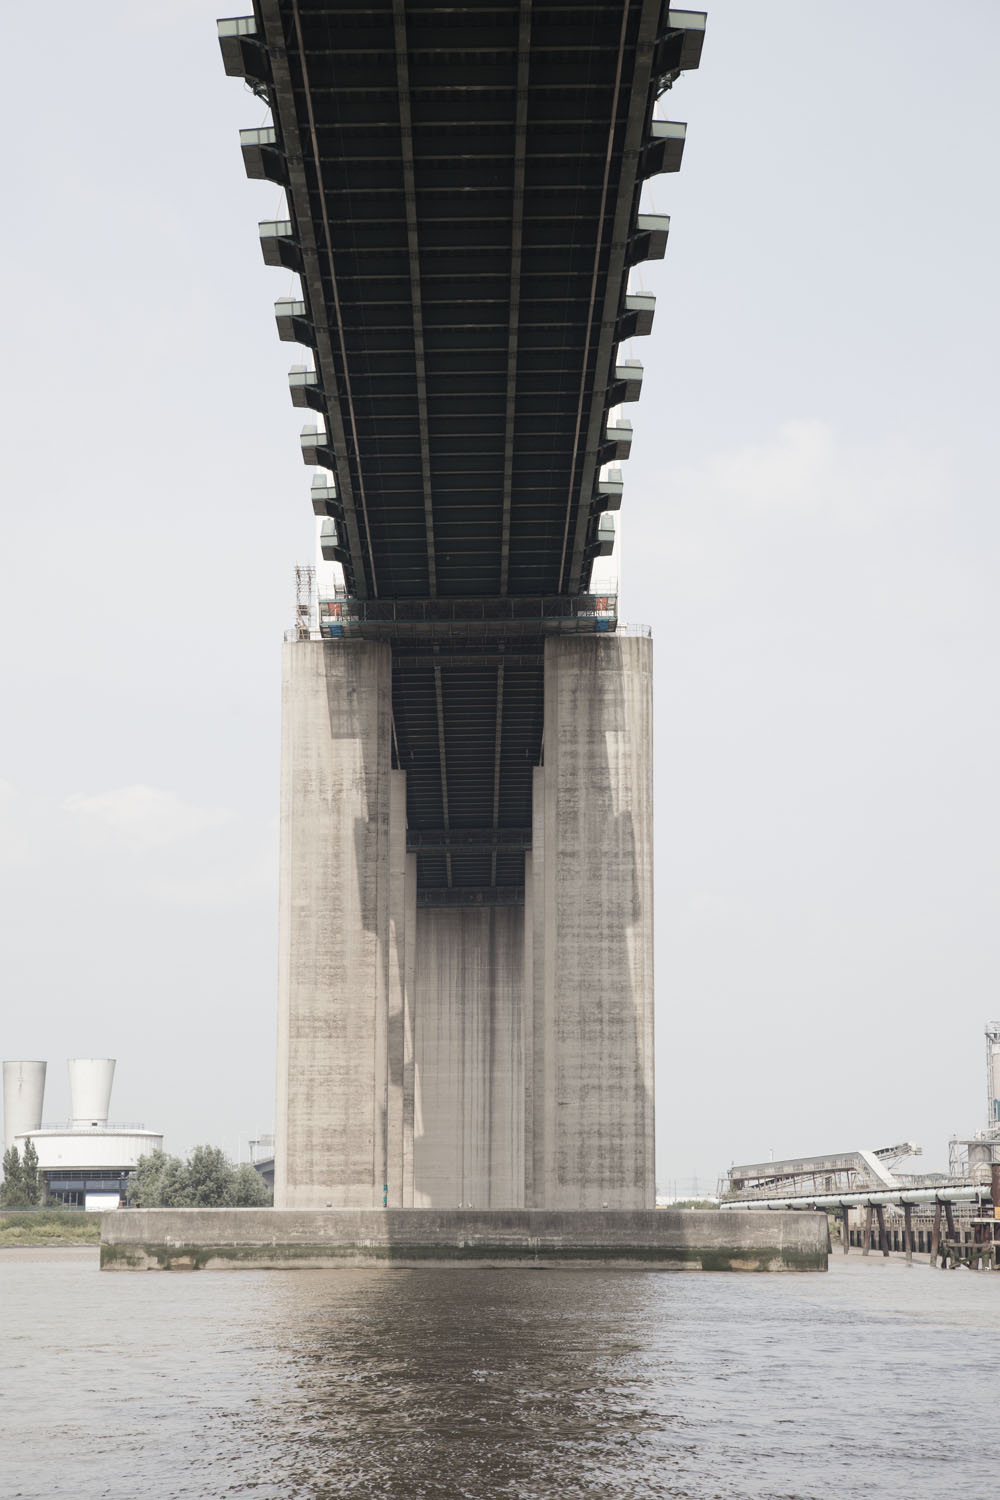 Dartford Crossing - Queen Elizabeth II bridge